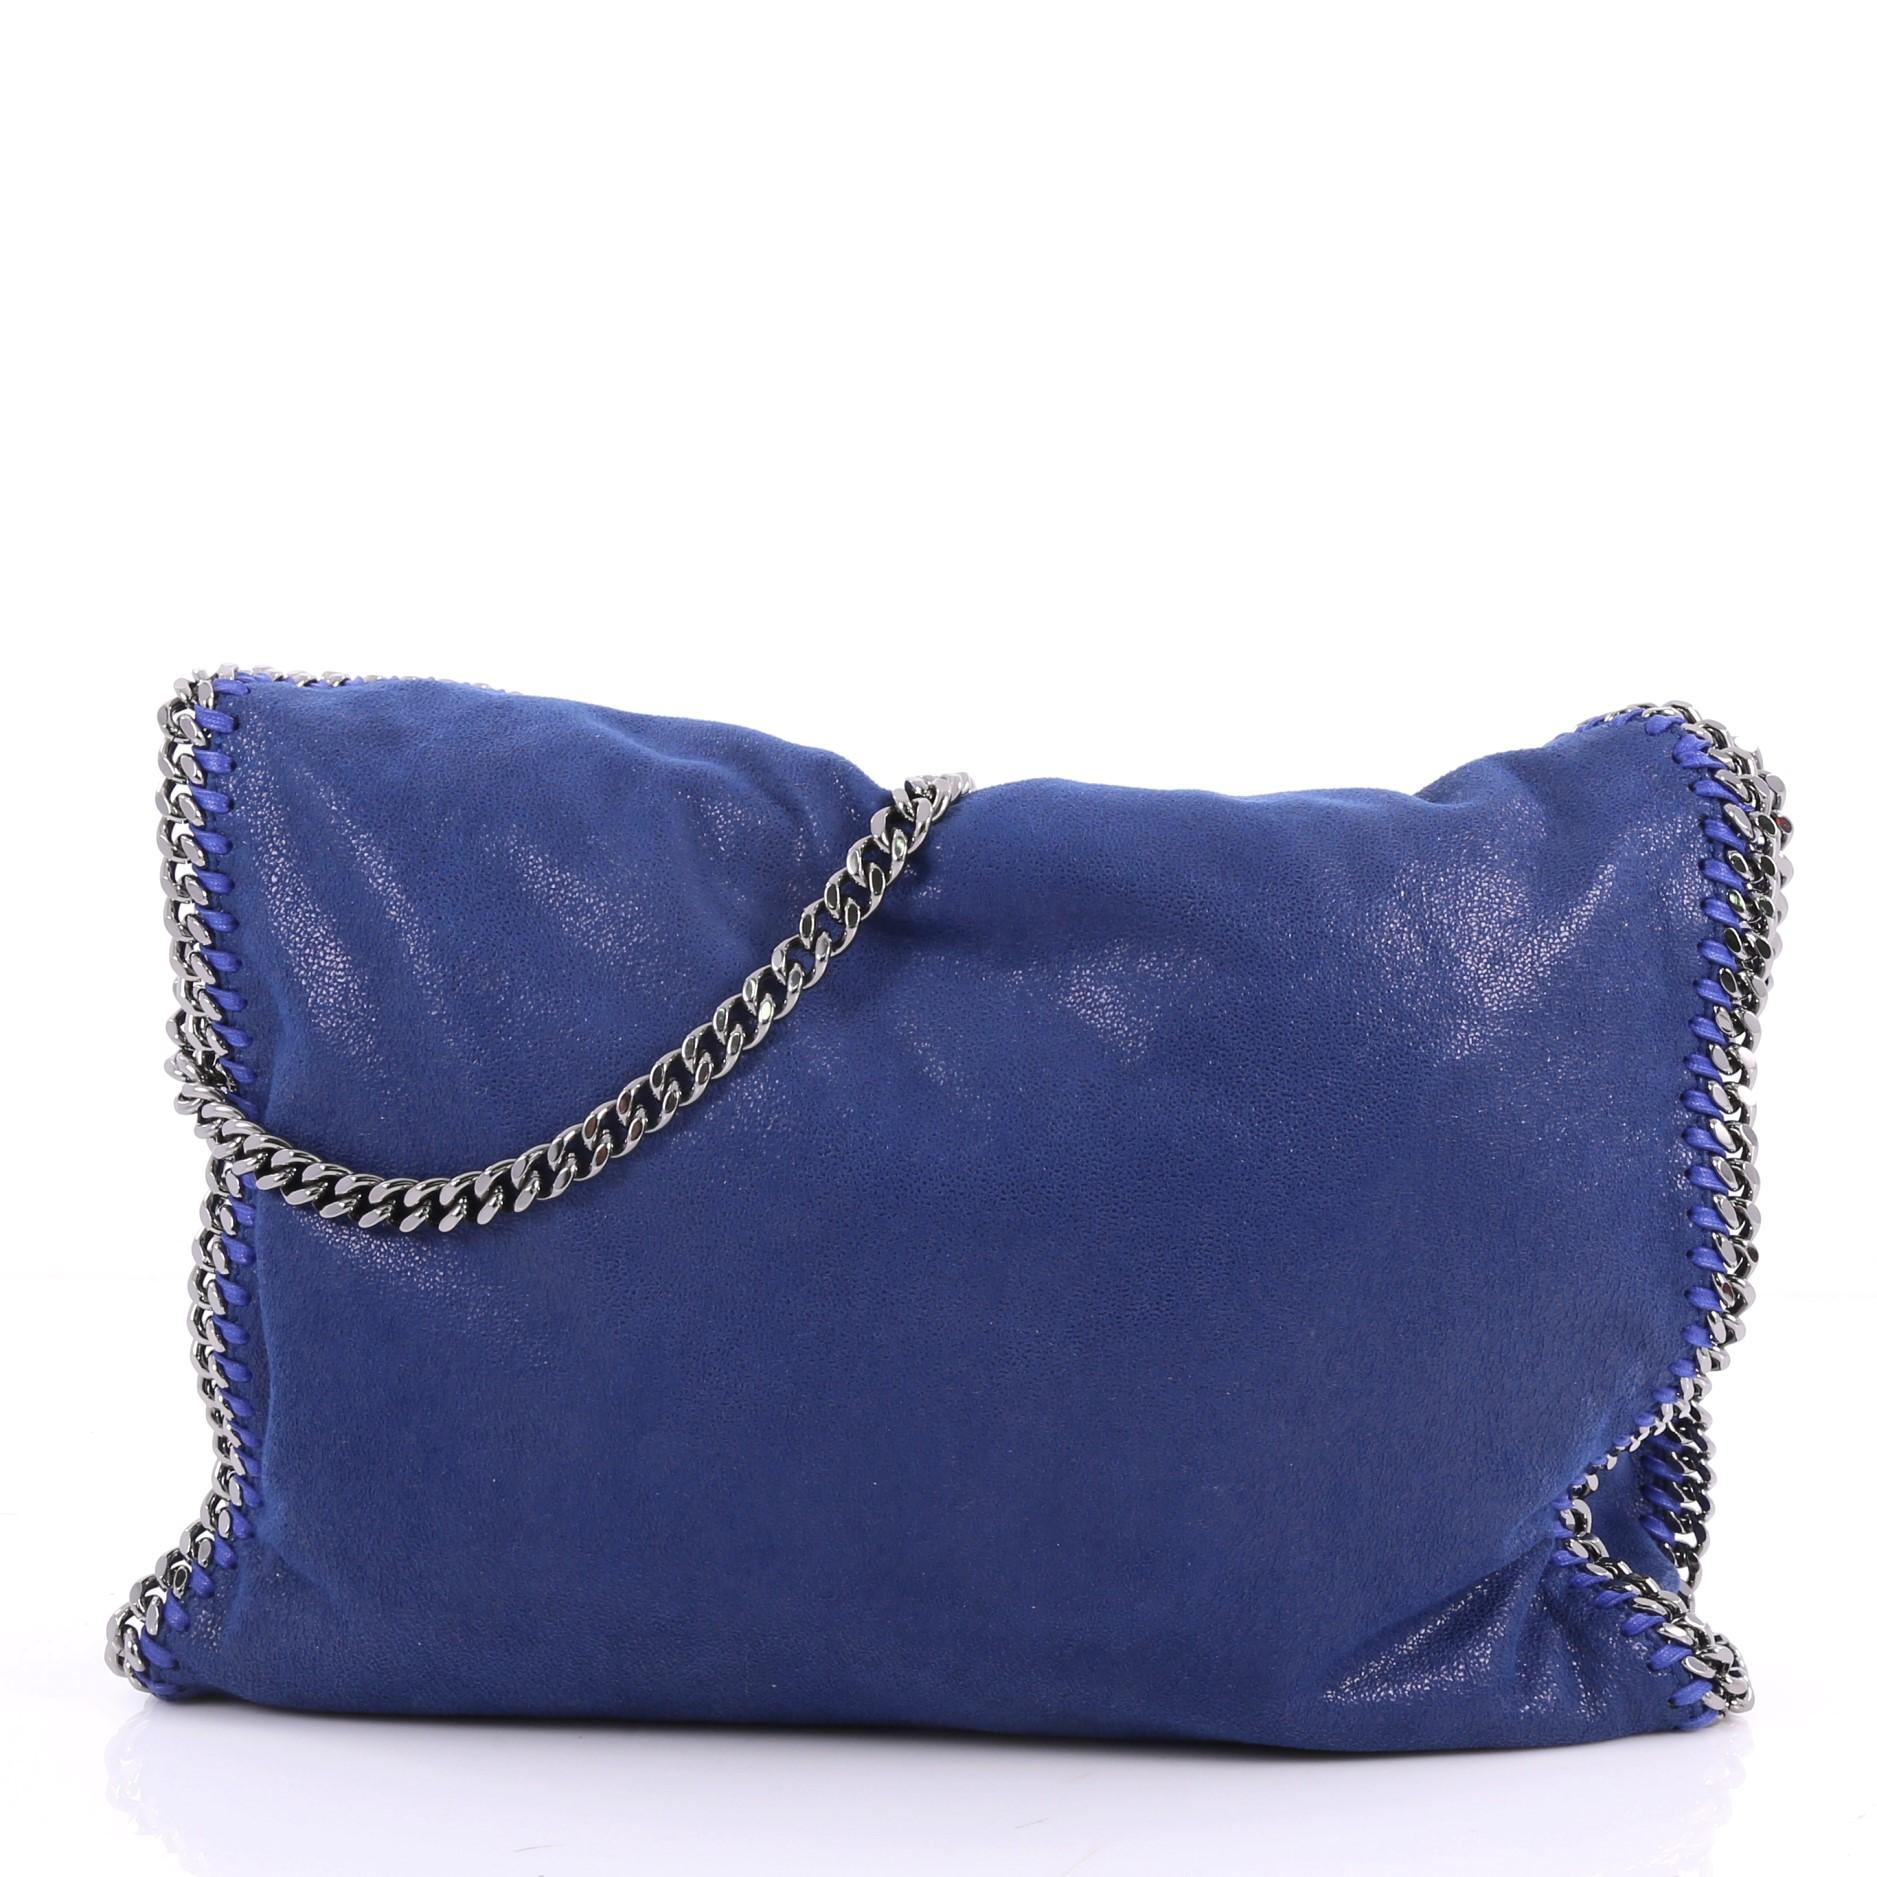 208b3c4cff Stella McCartney Falabella Fold Over Bag Shaggy Deer at 1stdibs